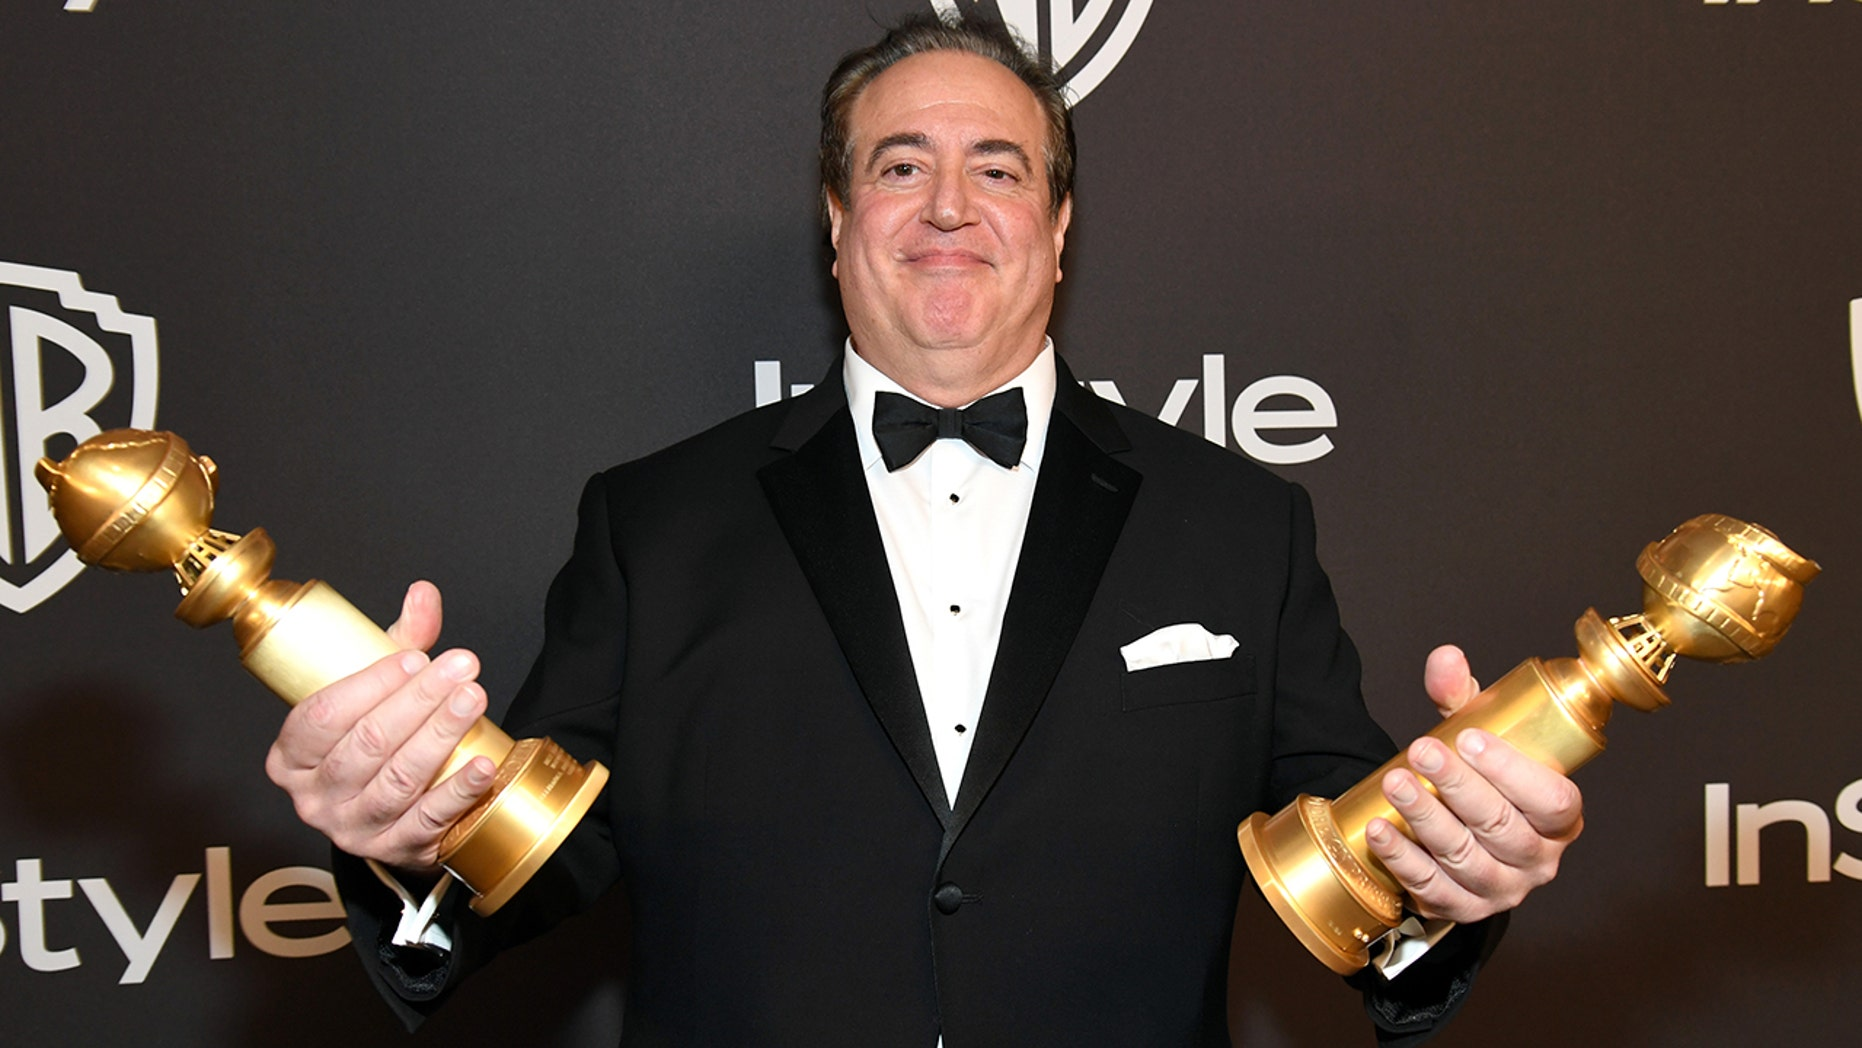 'Green Book' screenwriter Nick Vallelonga deleted his Twitter after getting backlash for a 2015 tweet.